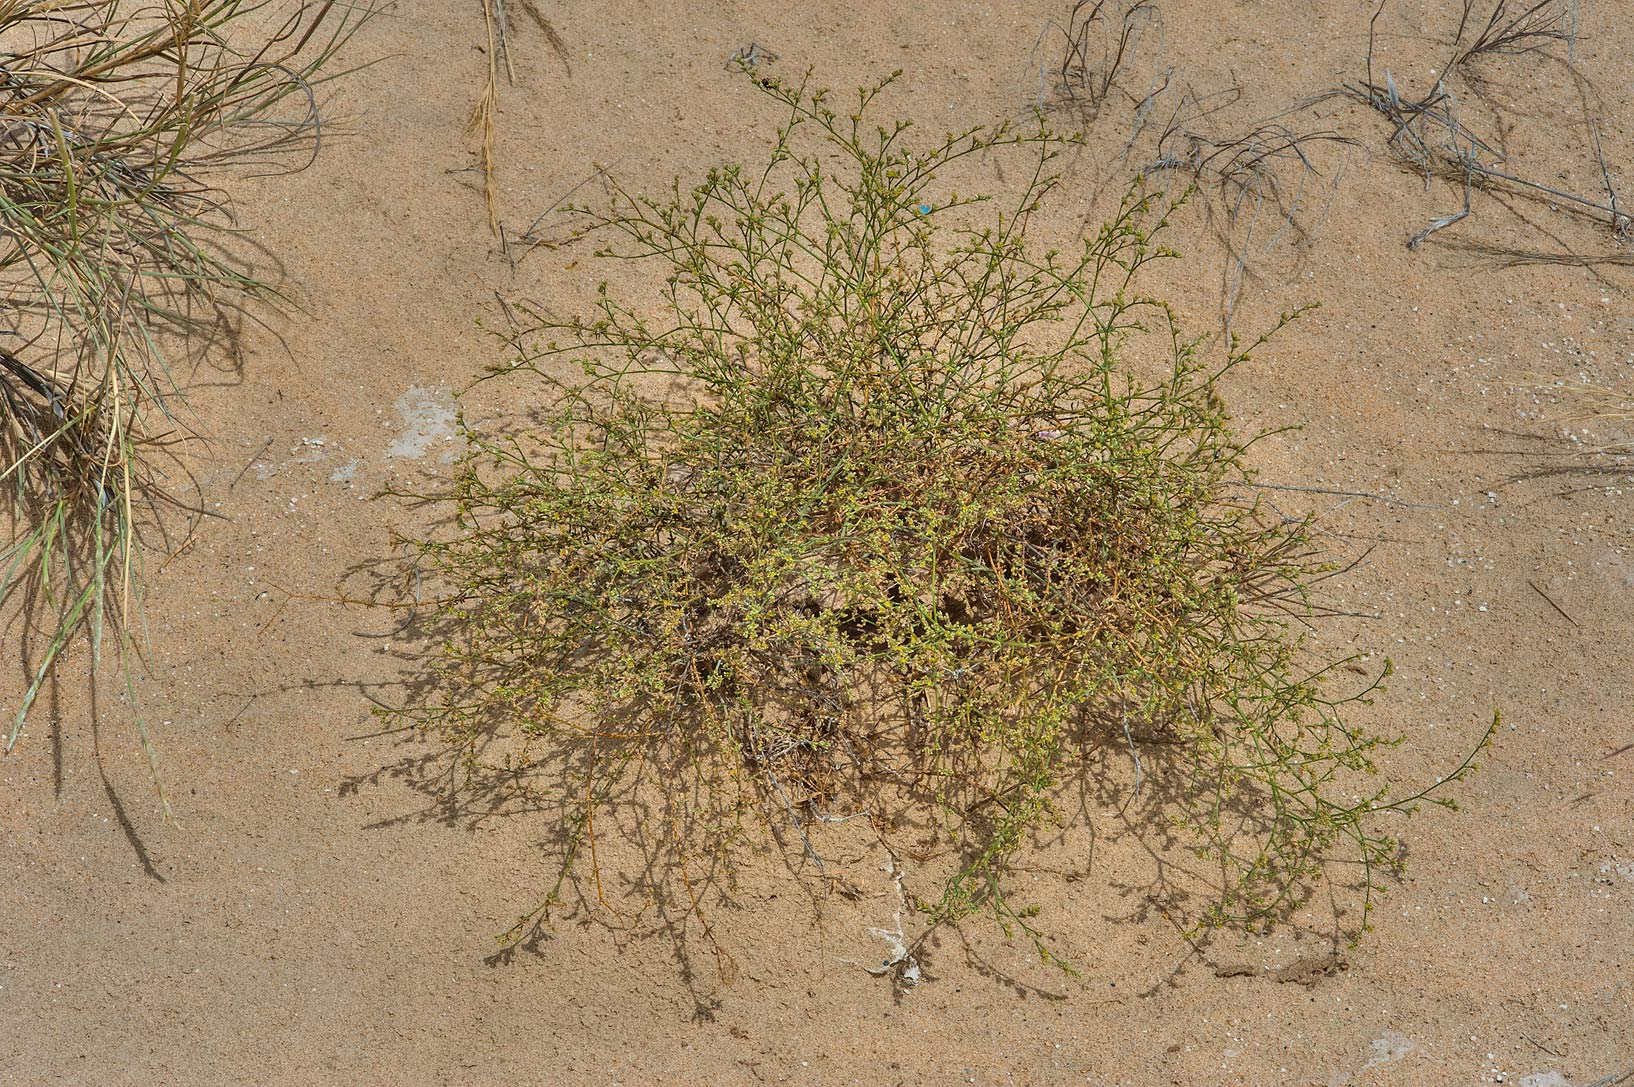 Polycarpaea repens (Corrigiola repens) in sand on...area of Rawdat Ekdaim. Southern Qatar